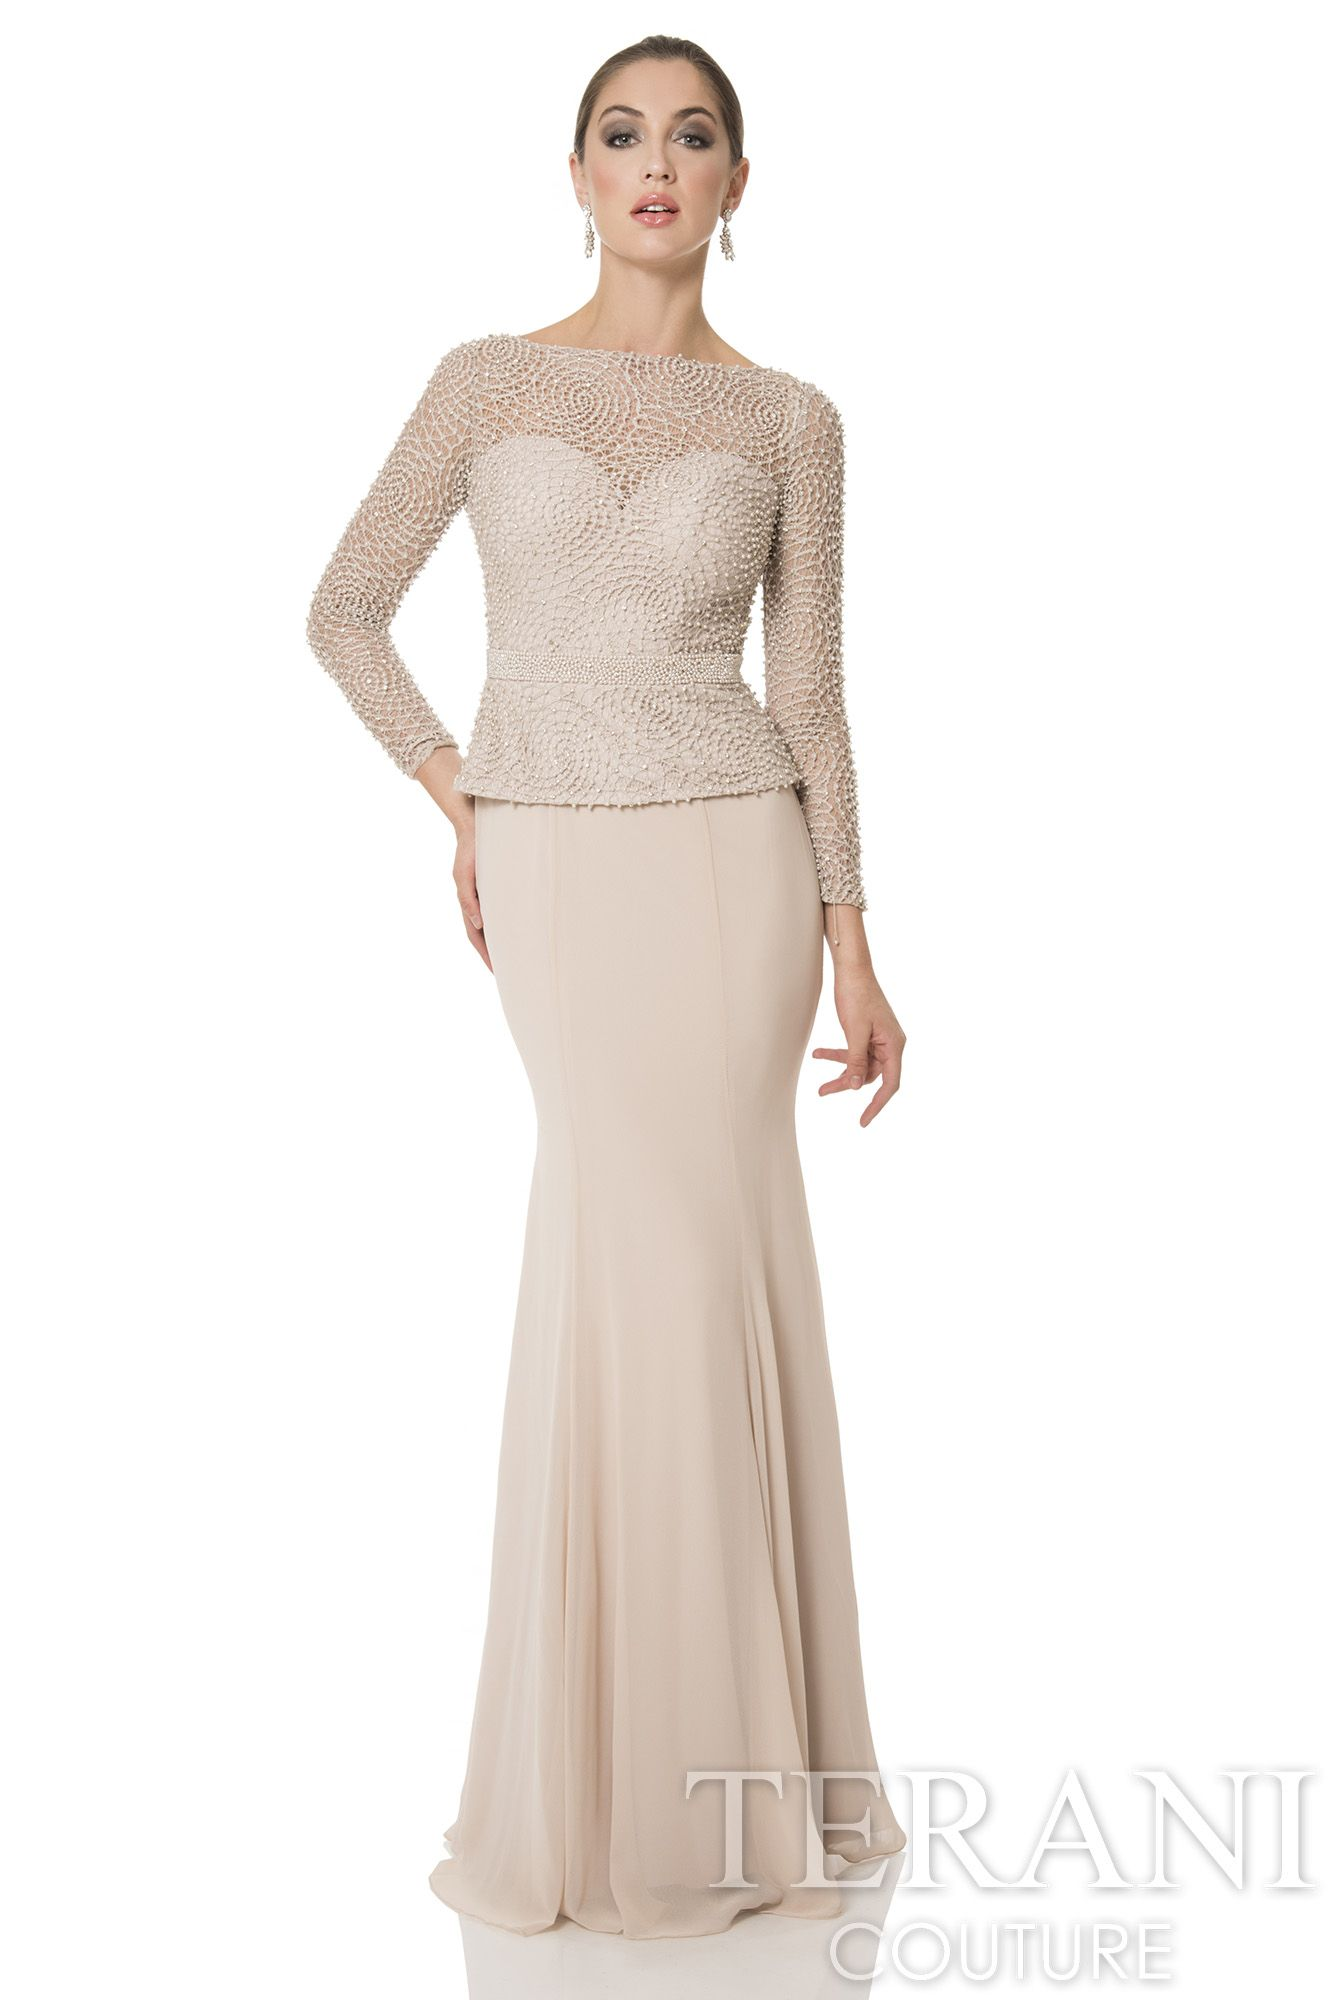 Terani Couture Mother Of The Bride Dress Spring 2016 Collection Style 1611M0628